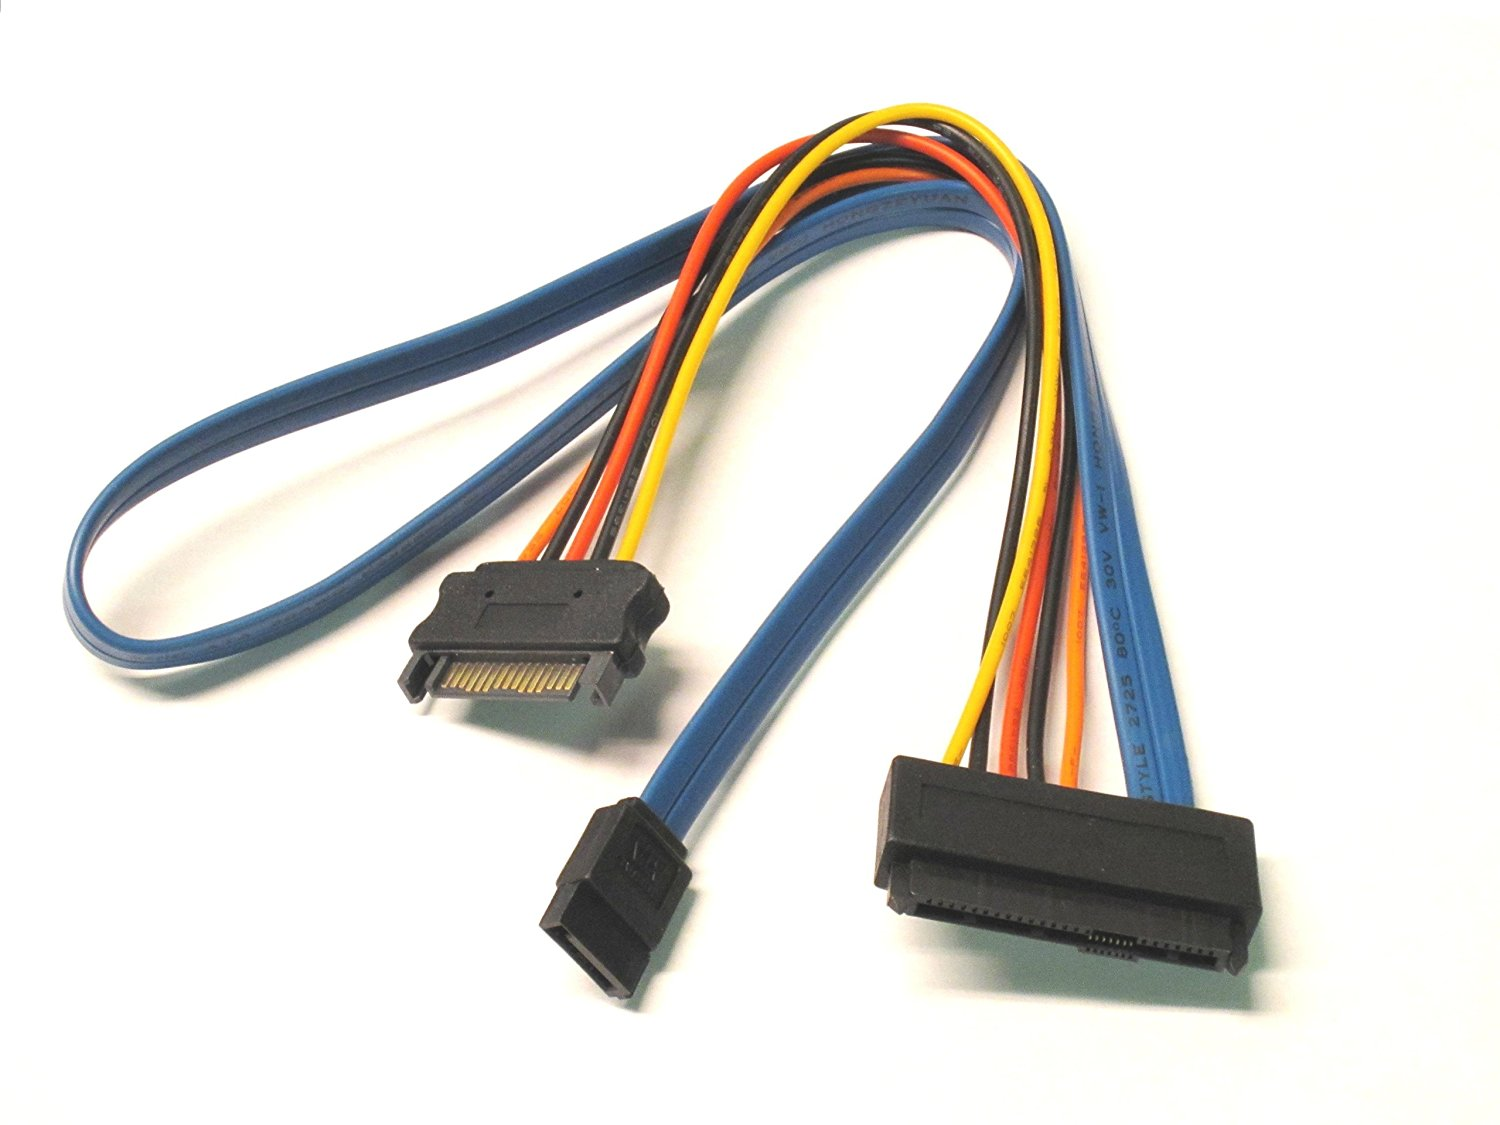 Micro SATA Cables - SAS 29 Pin to 7 Pin SATA Cable with 15 Pin SATA